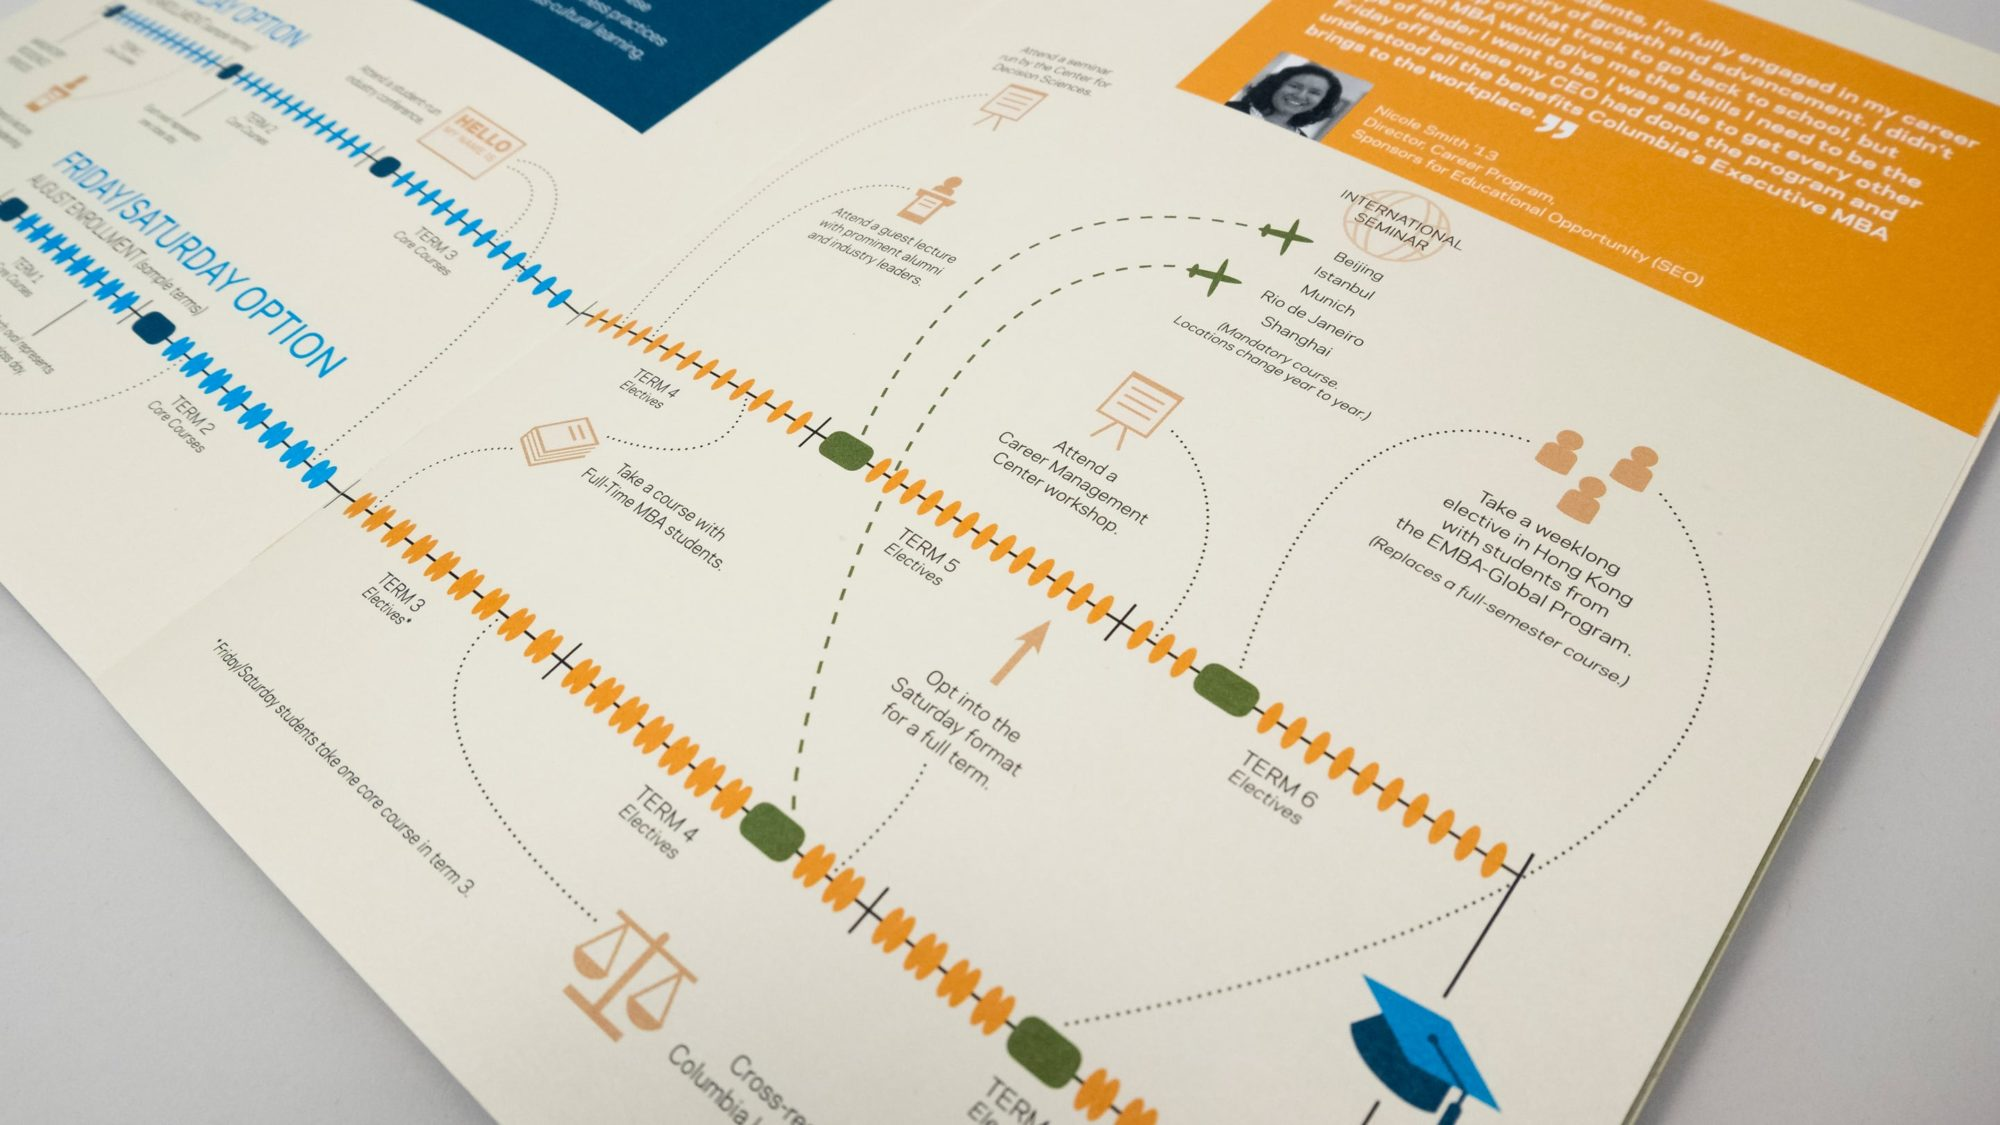 Detail of timeline infographic showing more of iconography